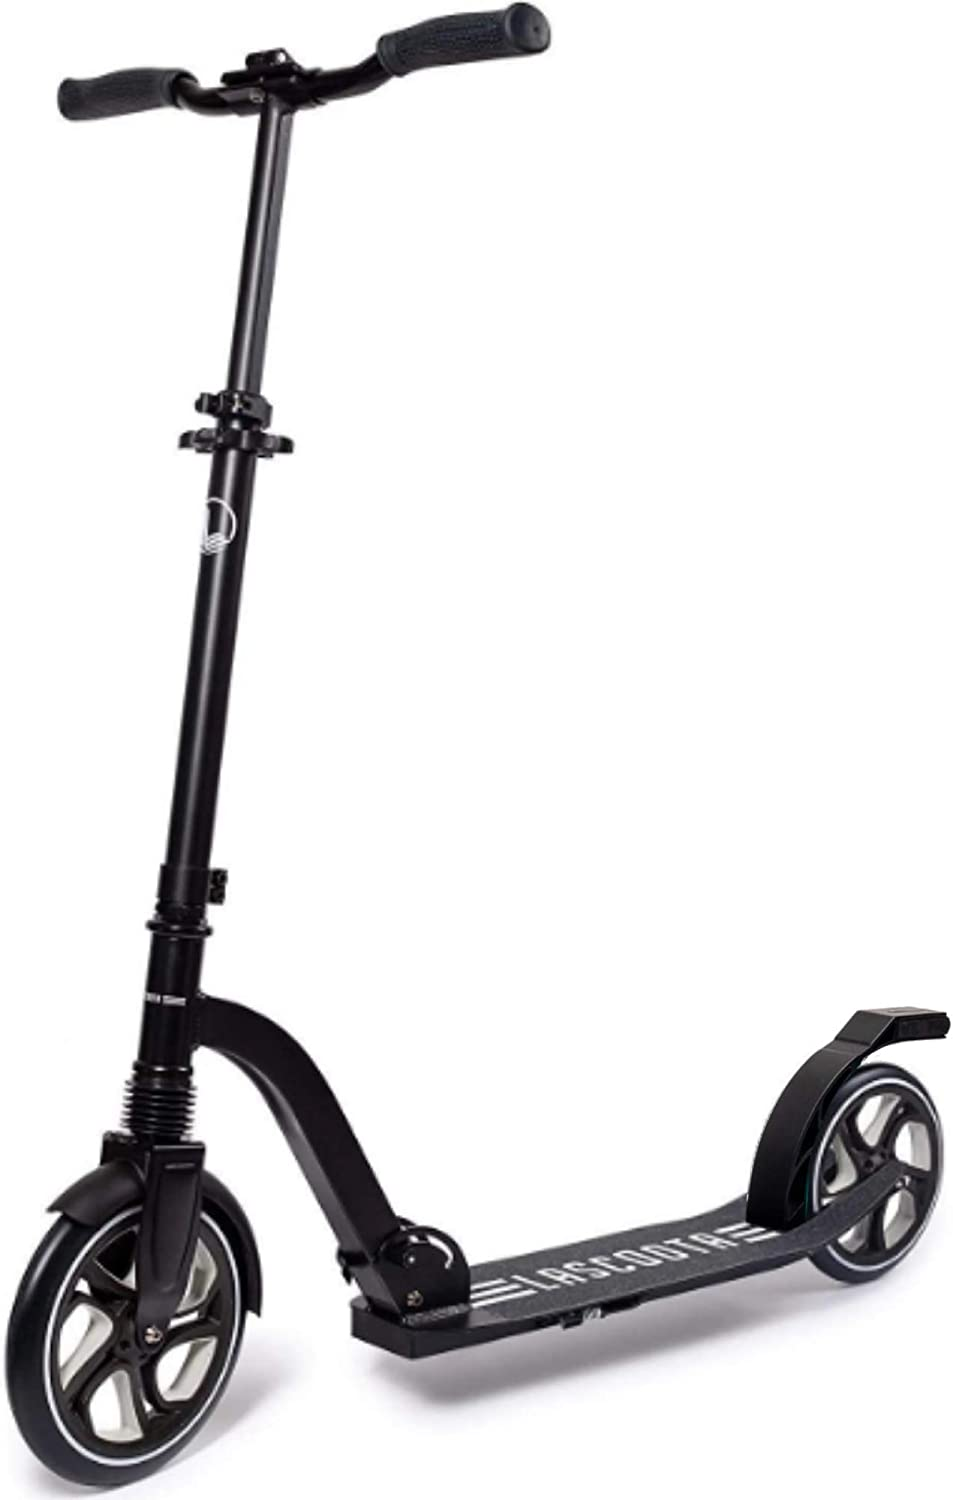 Best Kick Scooters for Heavy Adults (Reviews 2021)